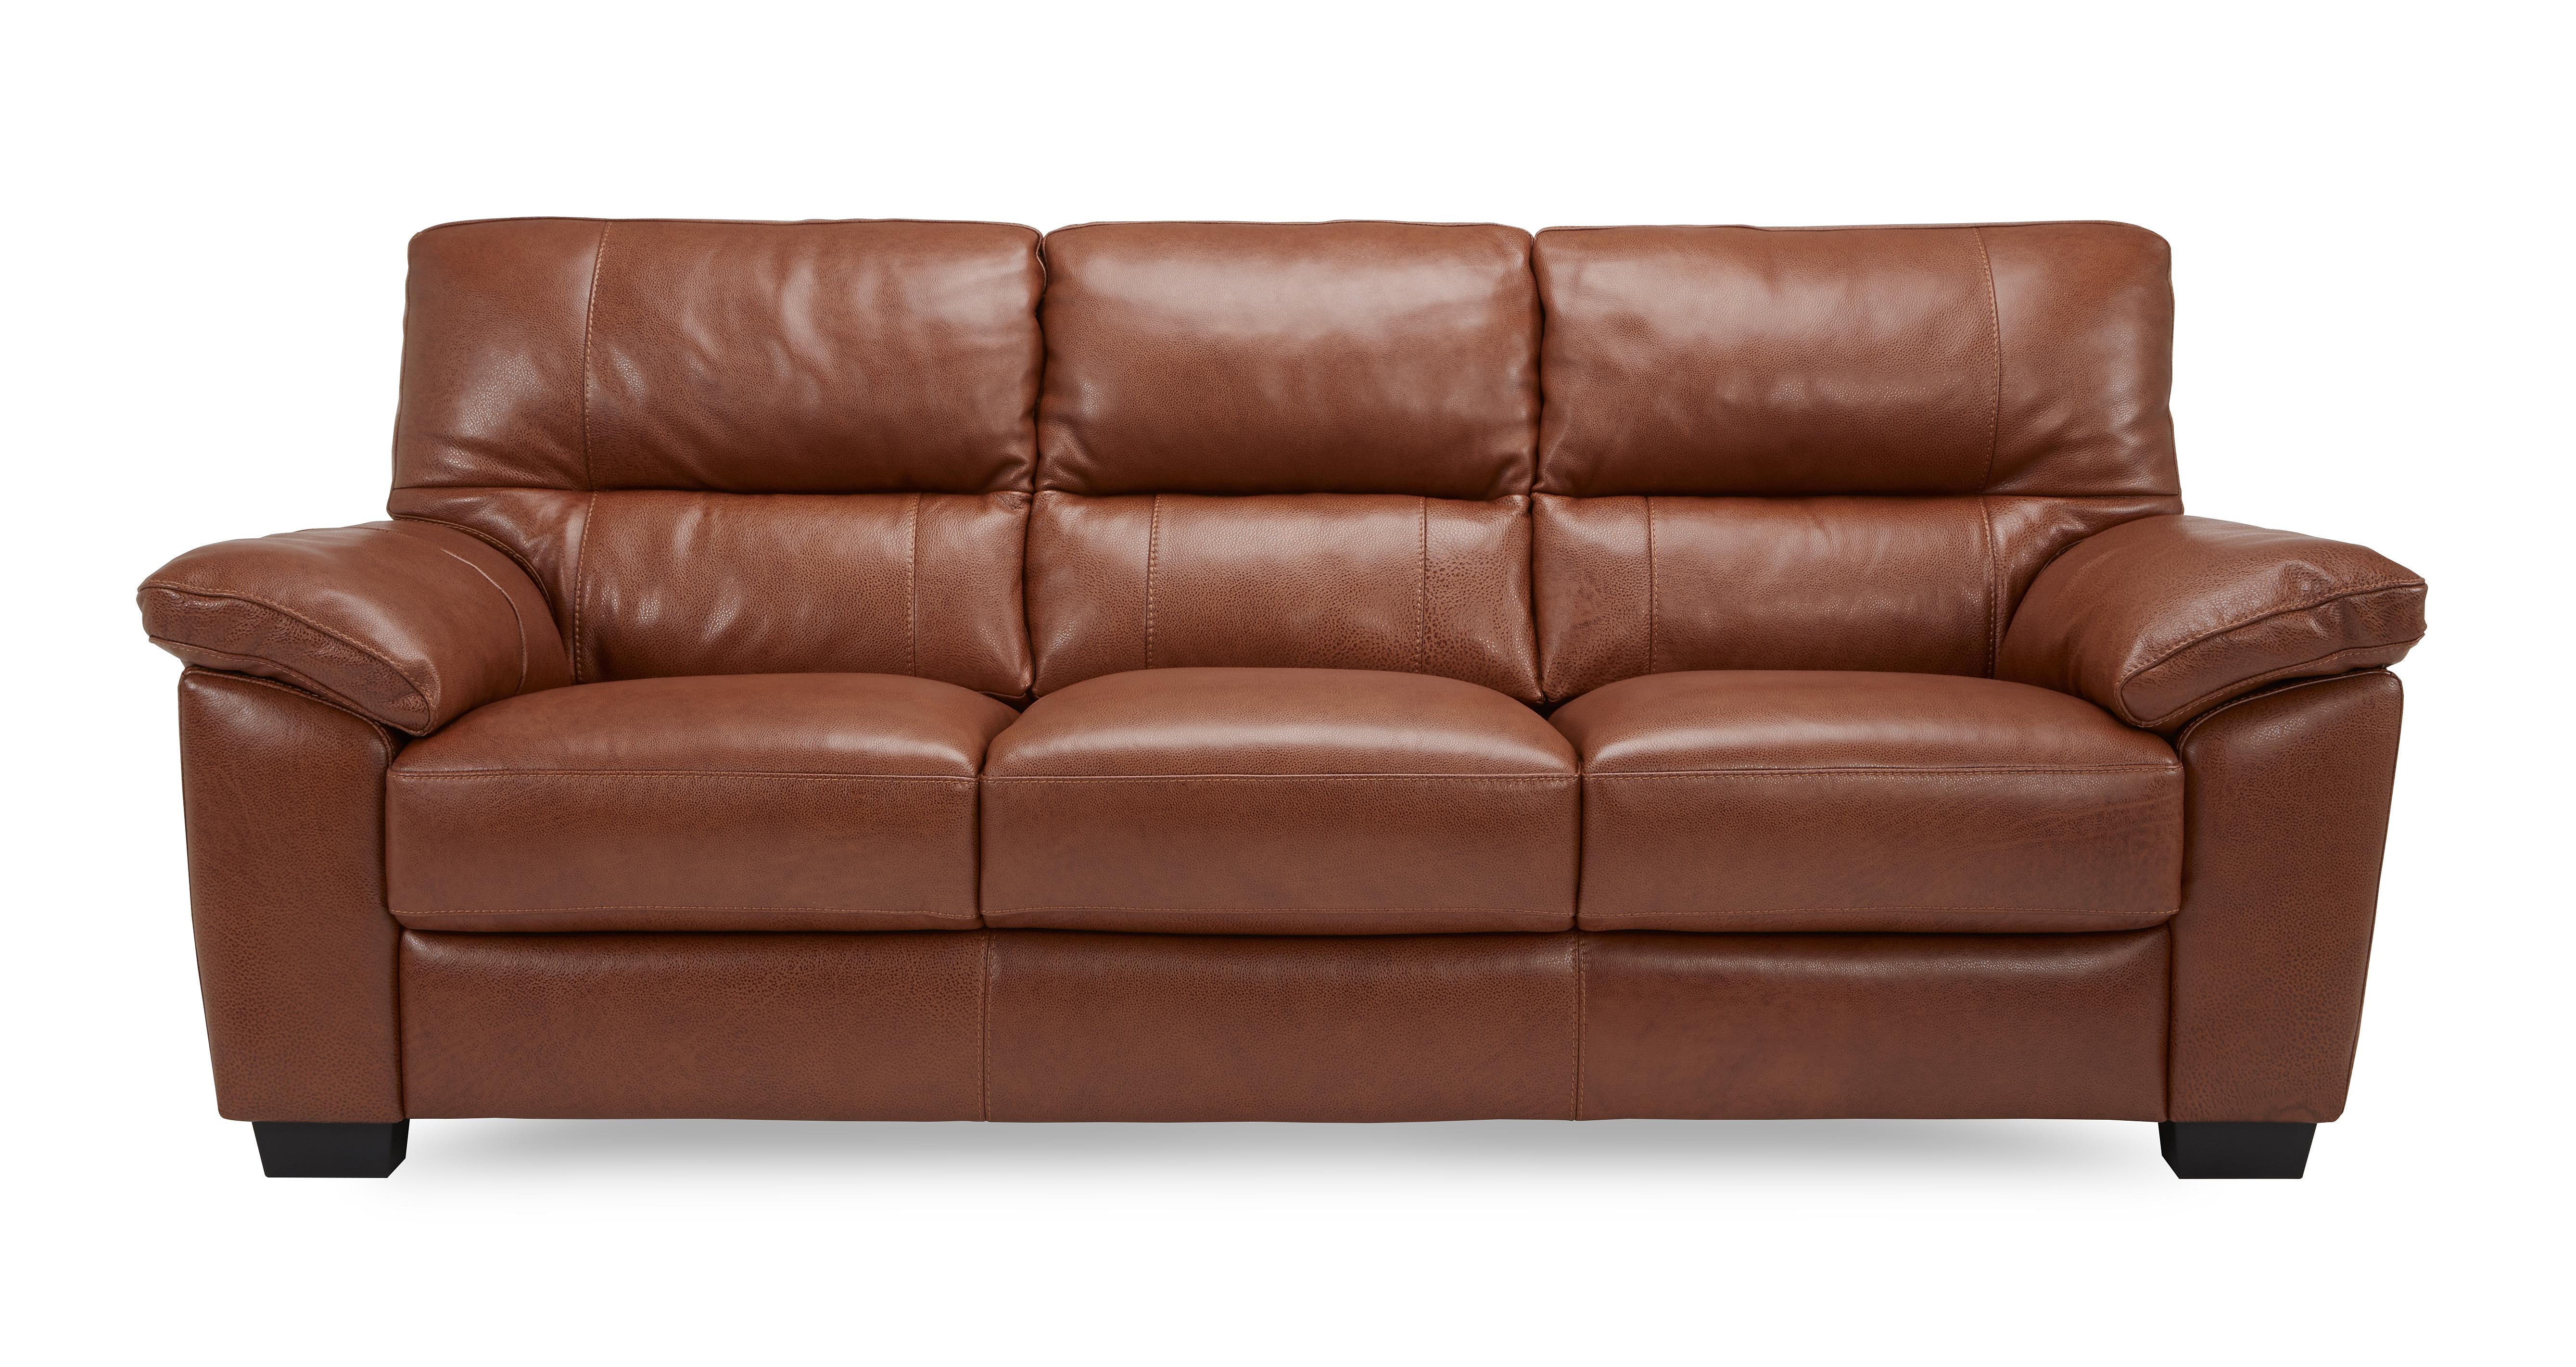 leather sofas dfs narrow depth dalmore 3 seater sofa brazil with look fabric